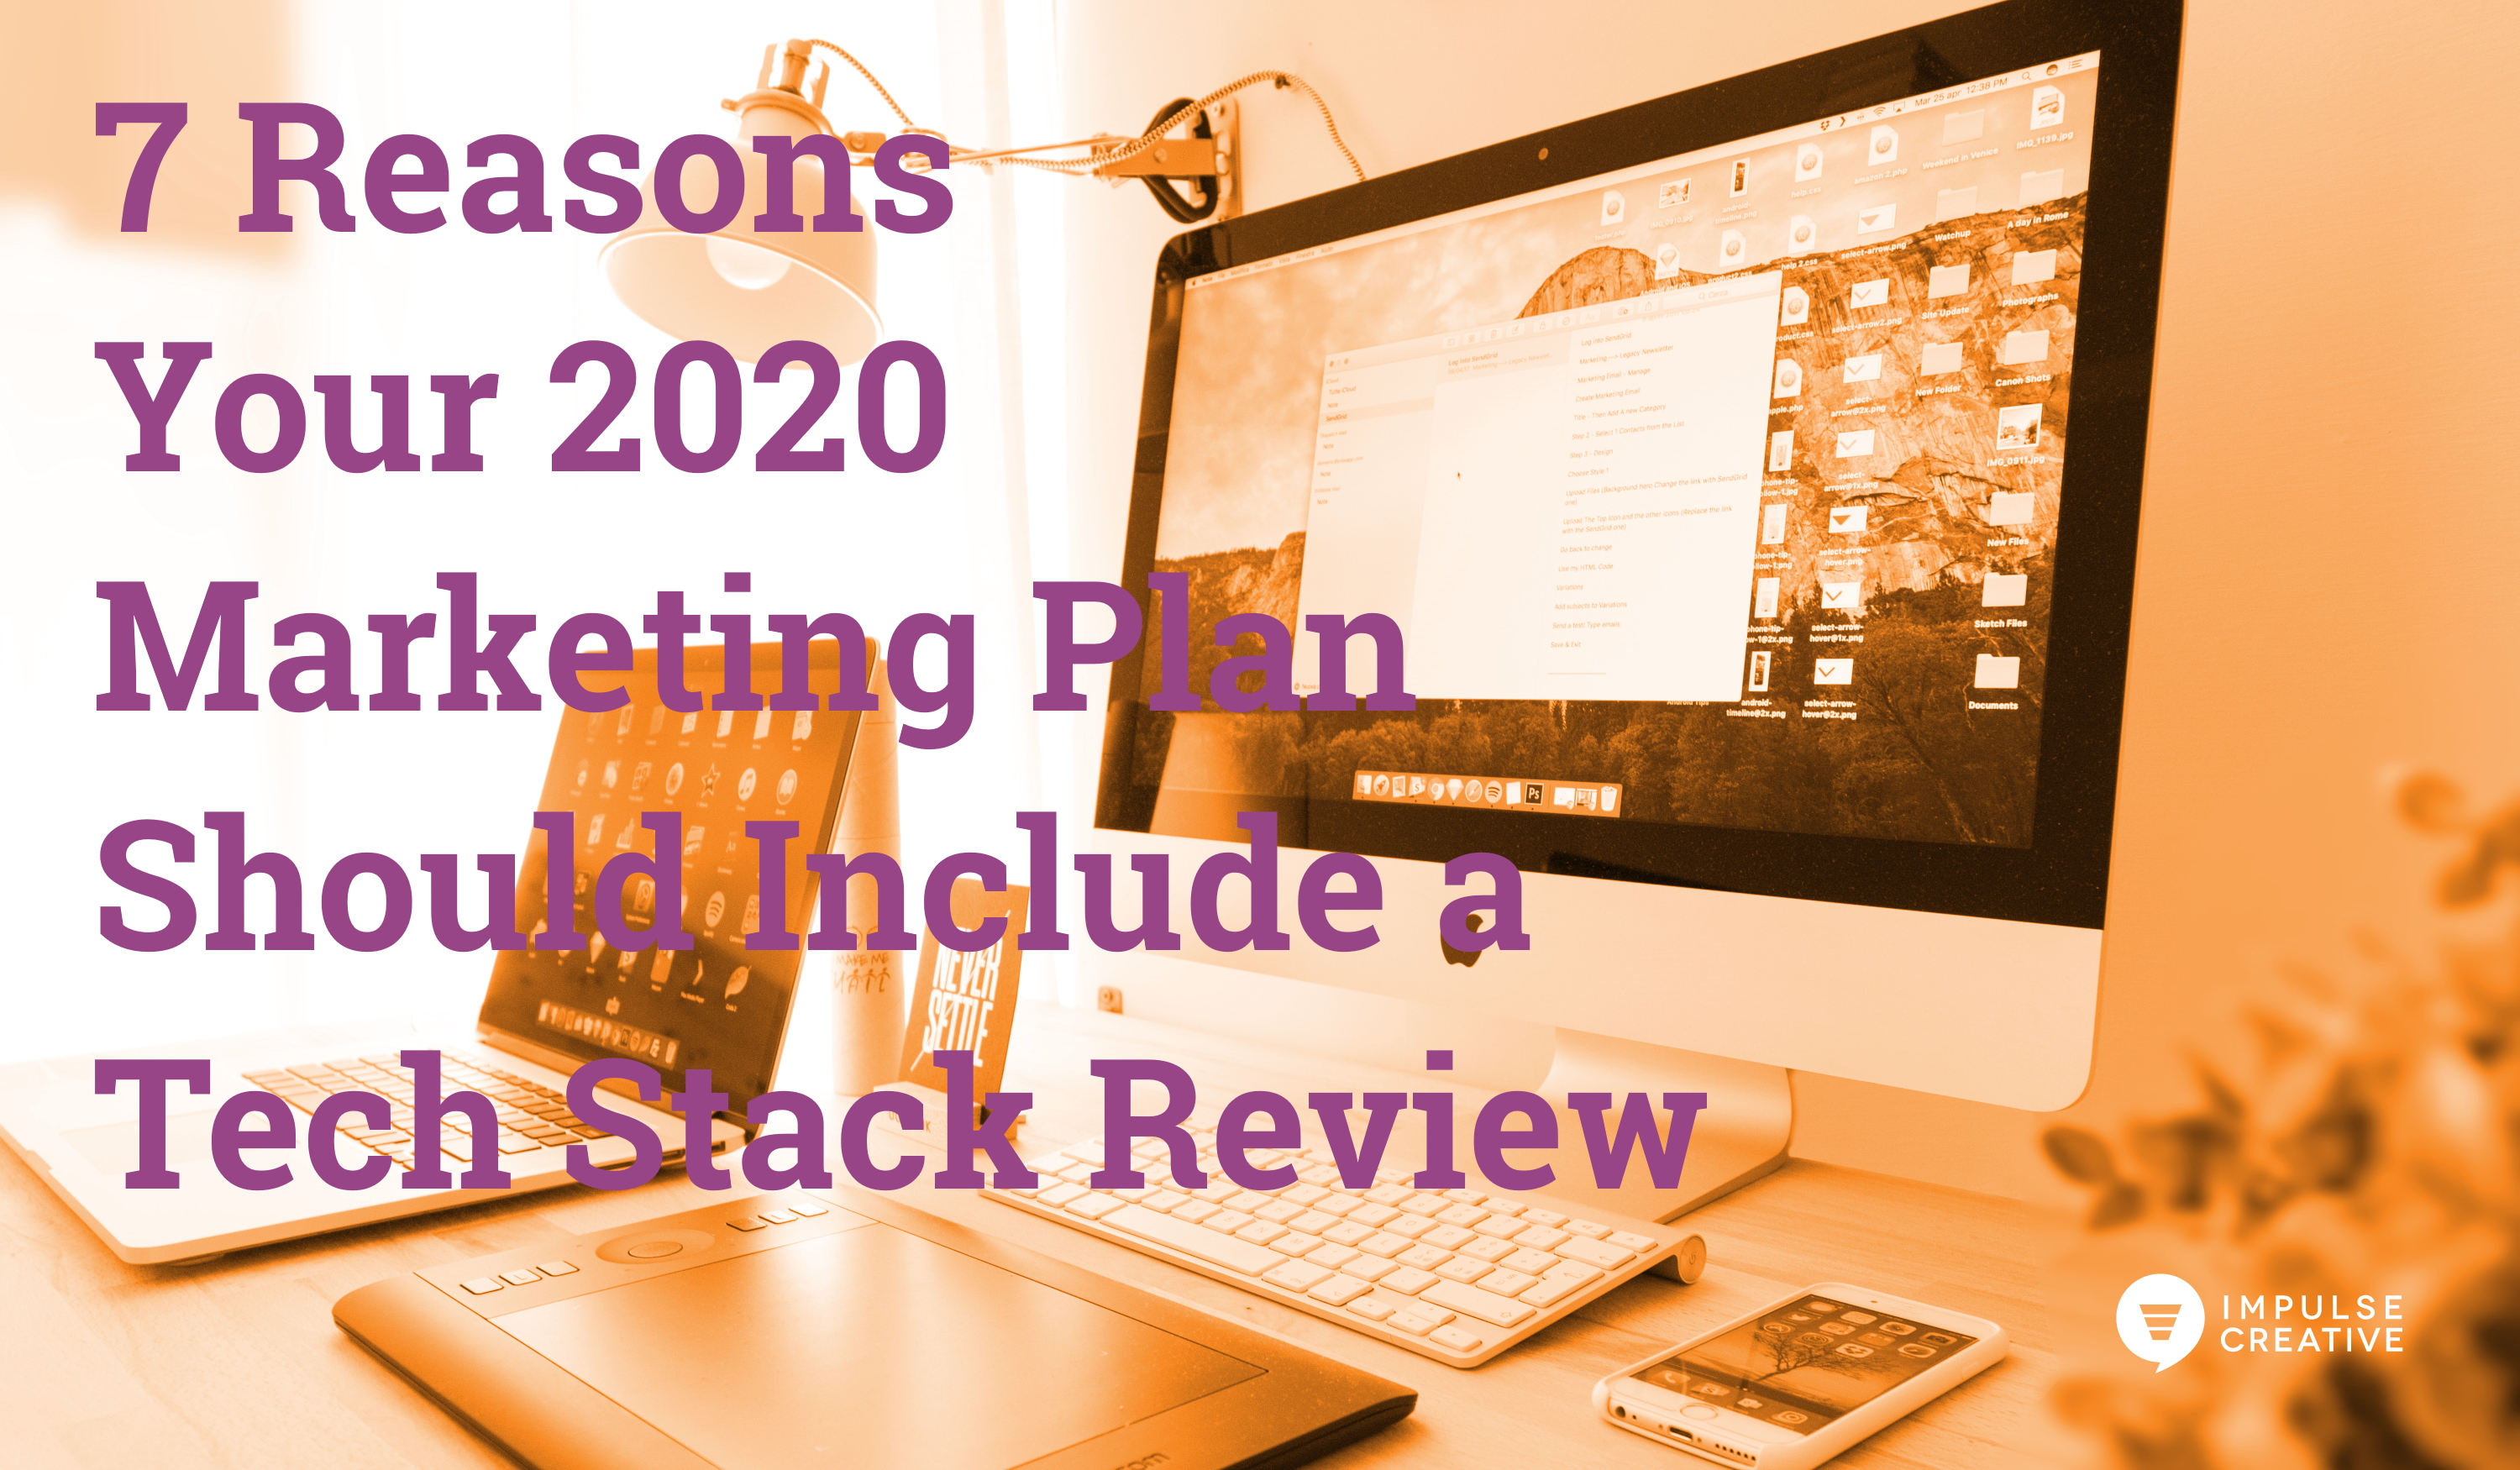 7 Reasons Your 2020 Marketing Plan Should Include a Tech Stack Review